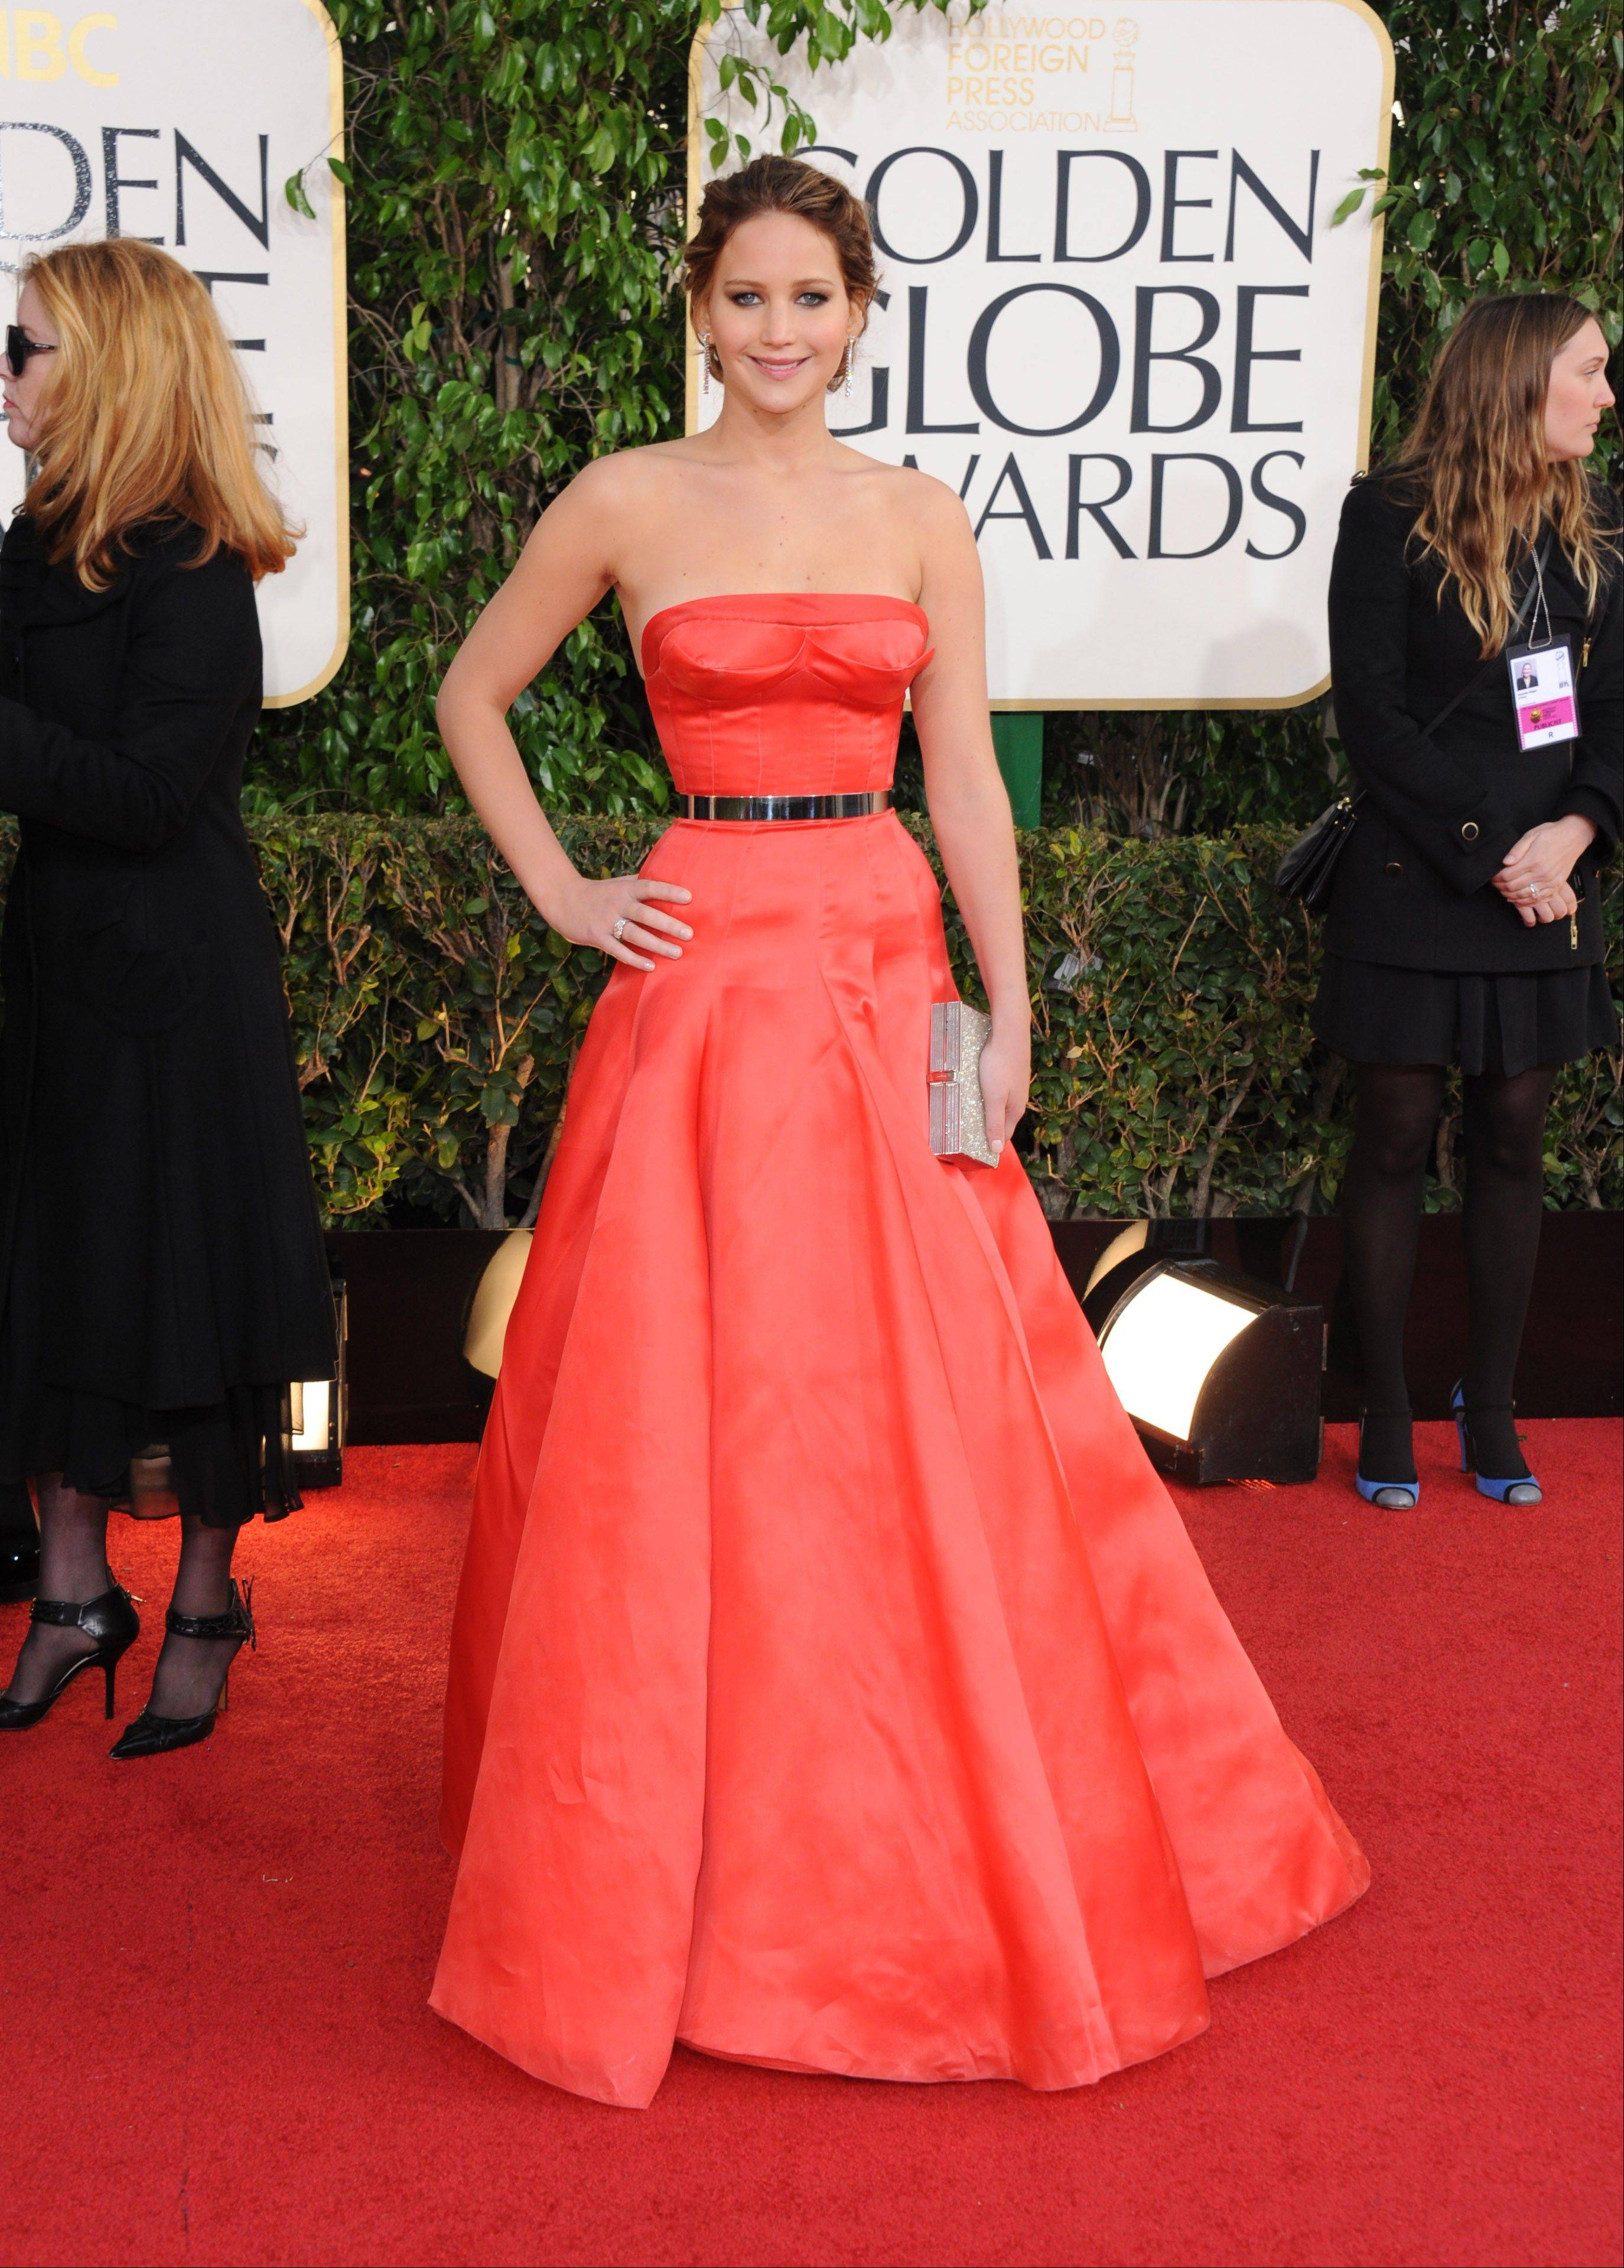 Actress Jennifer Lawrence arrives at the 70th Annual Golden Globe Awards at the Beverly Hilton Hotel on Sunday Jan. 13, 2013, in Beverly Hills, Calif.